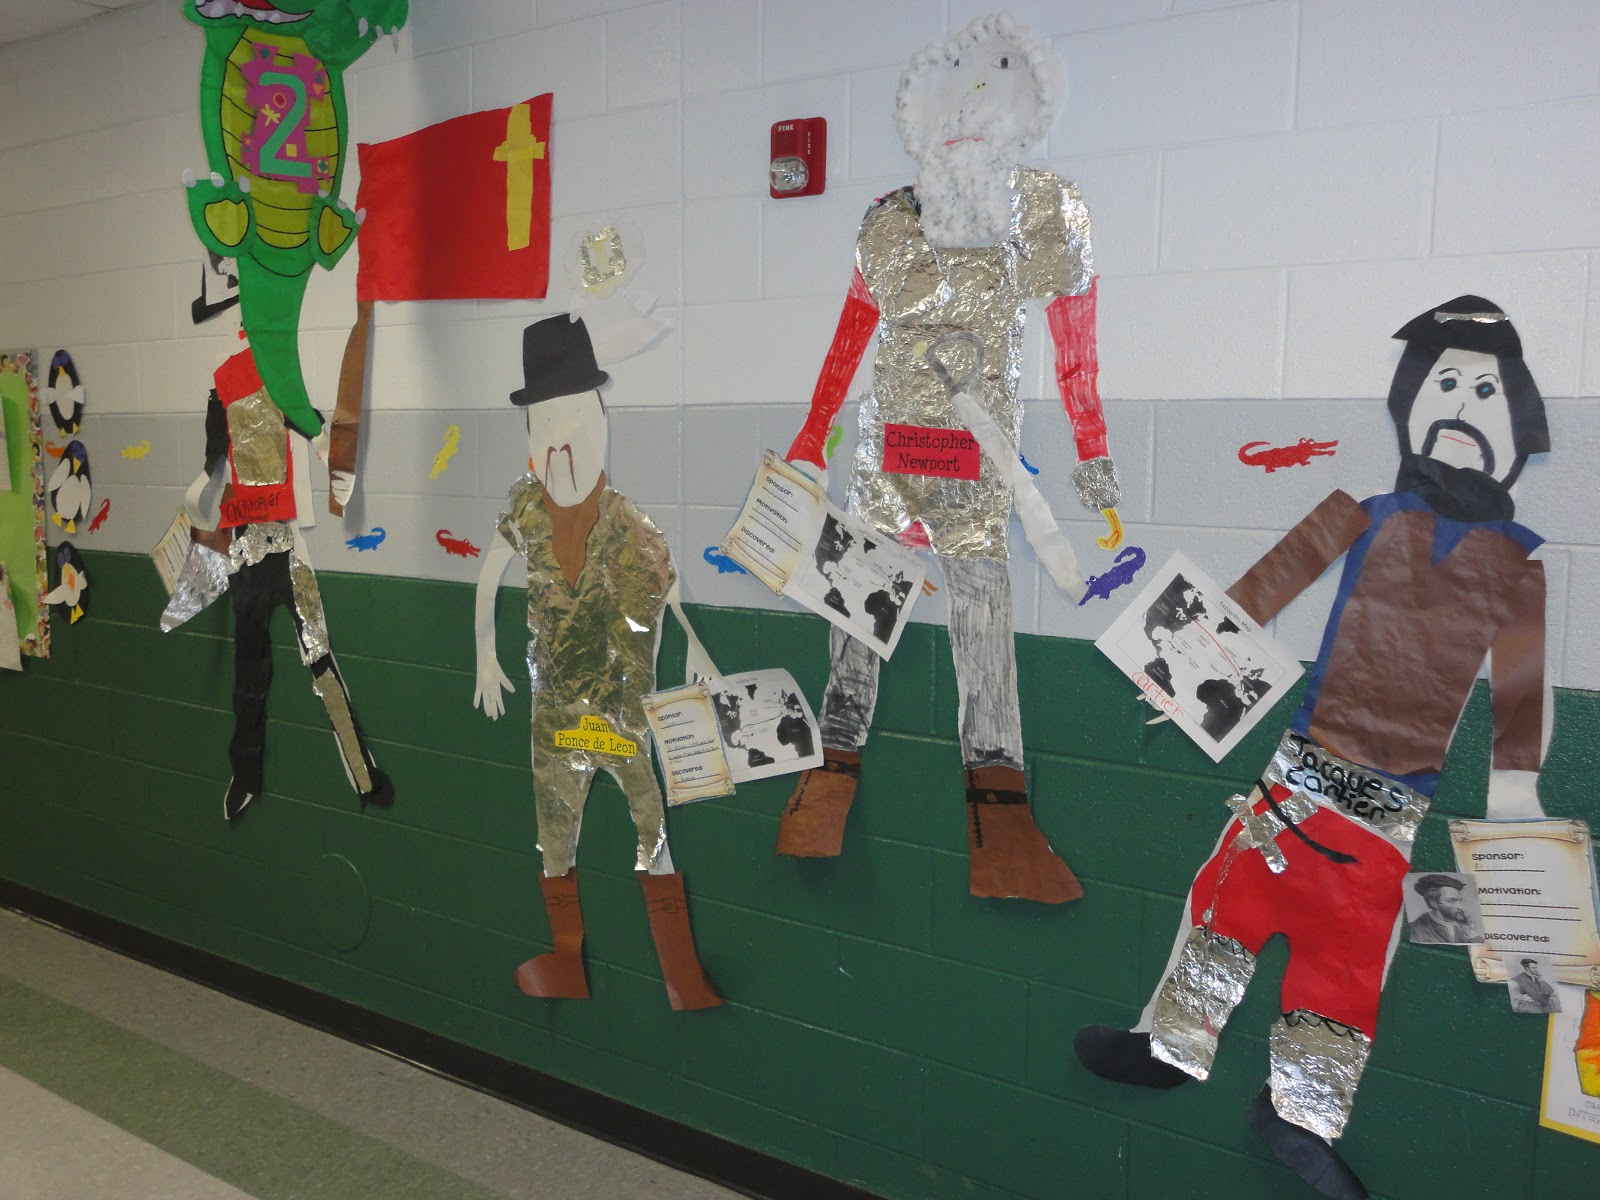 Our project made the Explorers came to life!